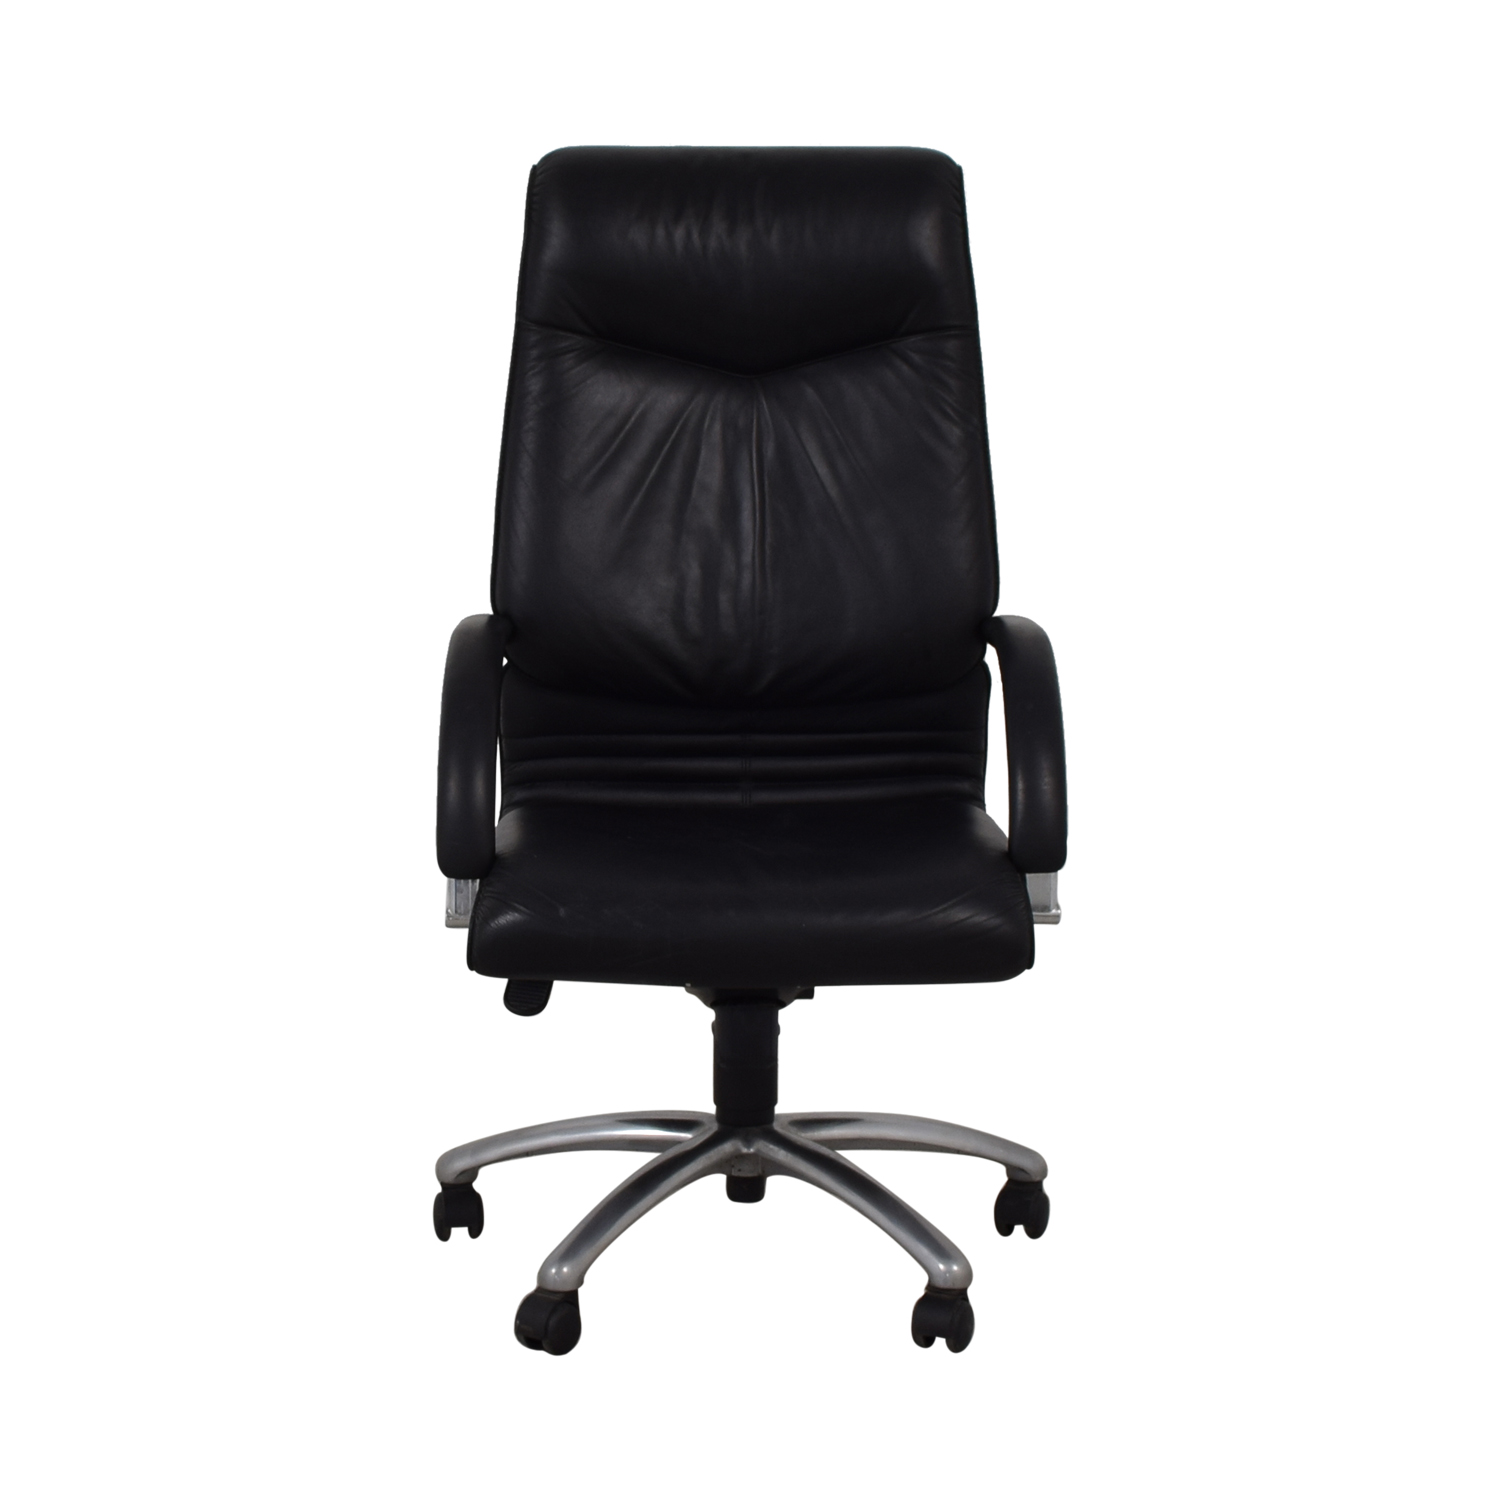 0a1bc8697fc 87% OFF - Leyform Elegant Executive Leather Office Chair   Chairs